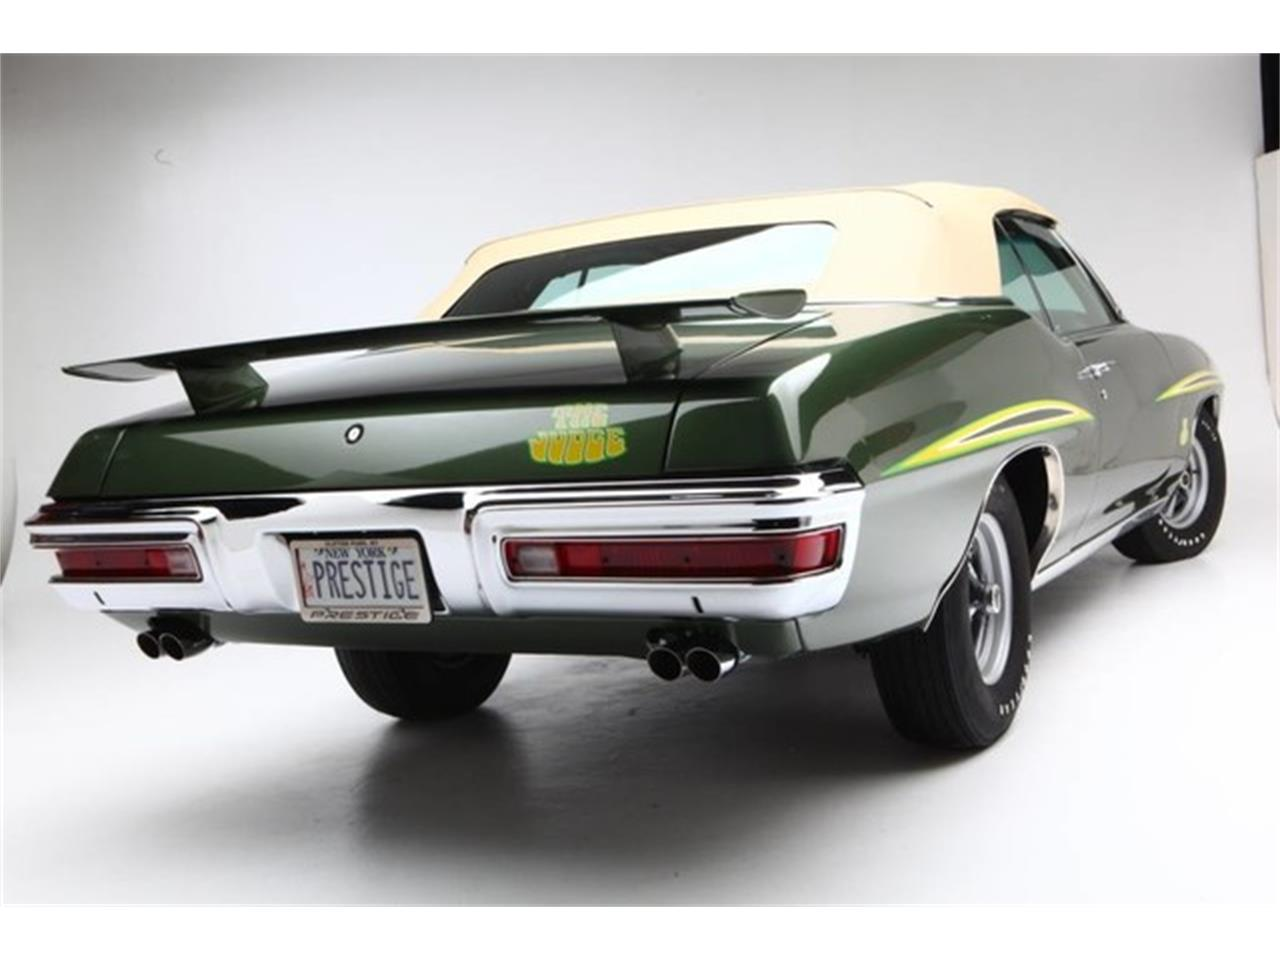 Large Picture of '70 GTO (The Judge) located in Clifton Park New York - $219,000.00 - PU25